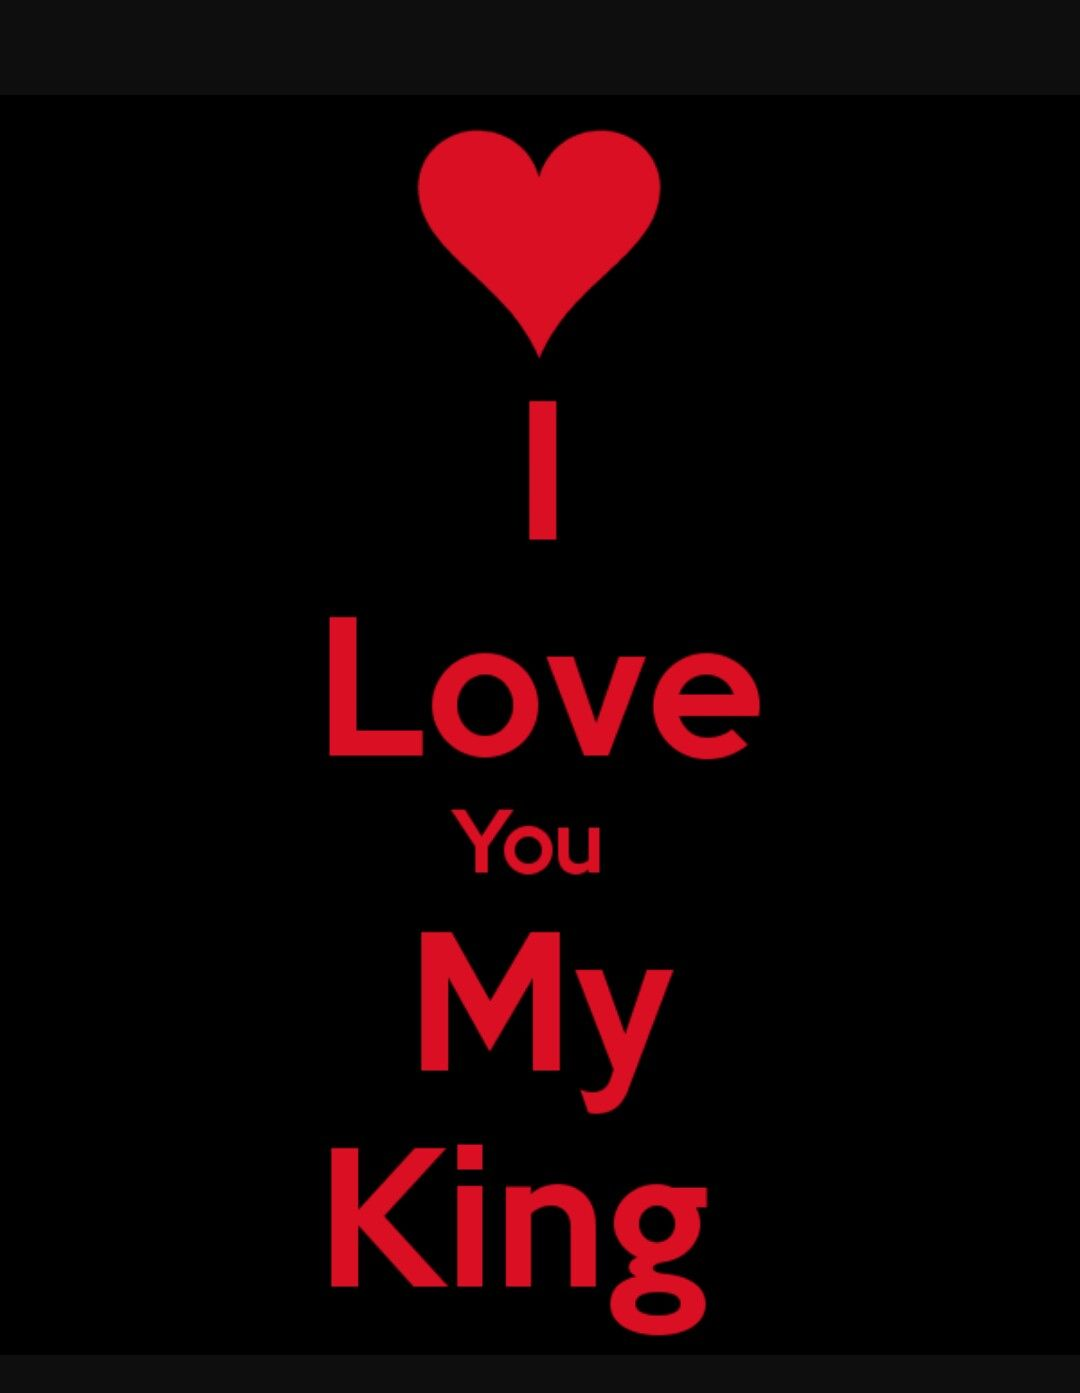 I Love You My King Quotes : quotes, Cheri, ❤️, (thoughts), Quotes,, Morning, Quotes